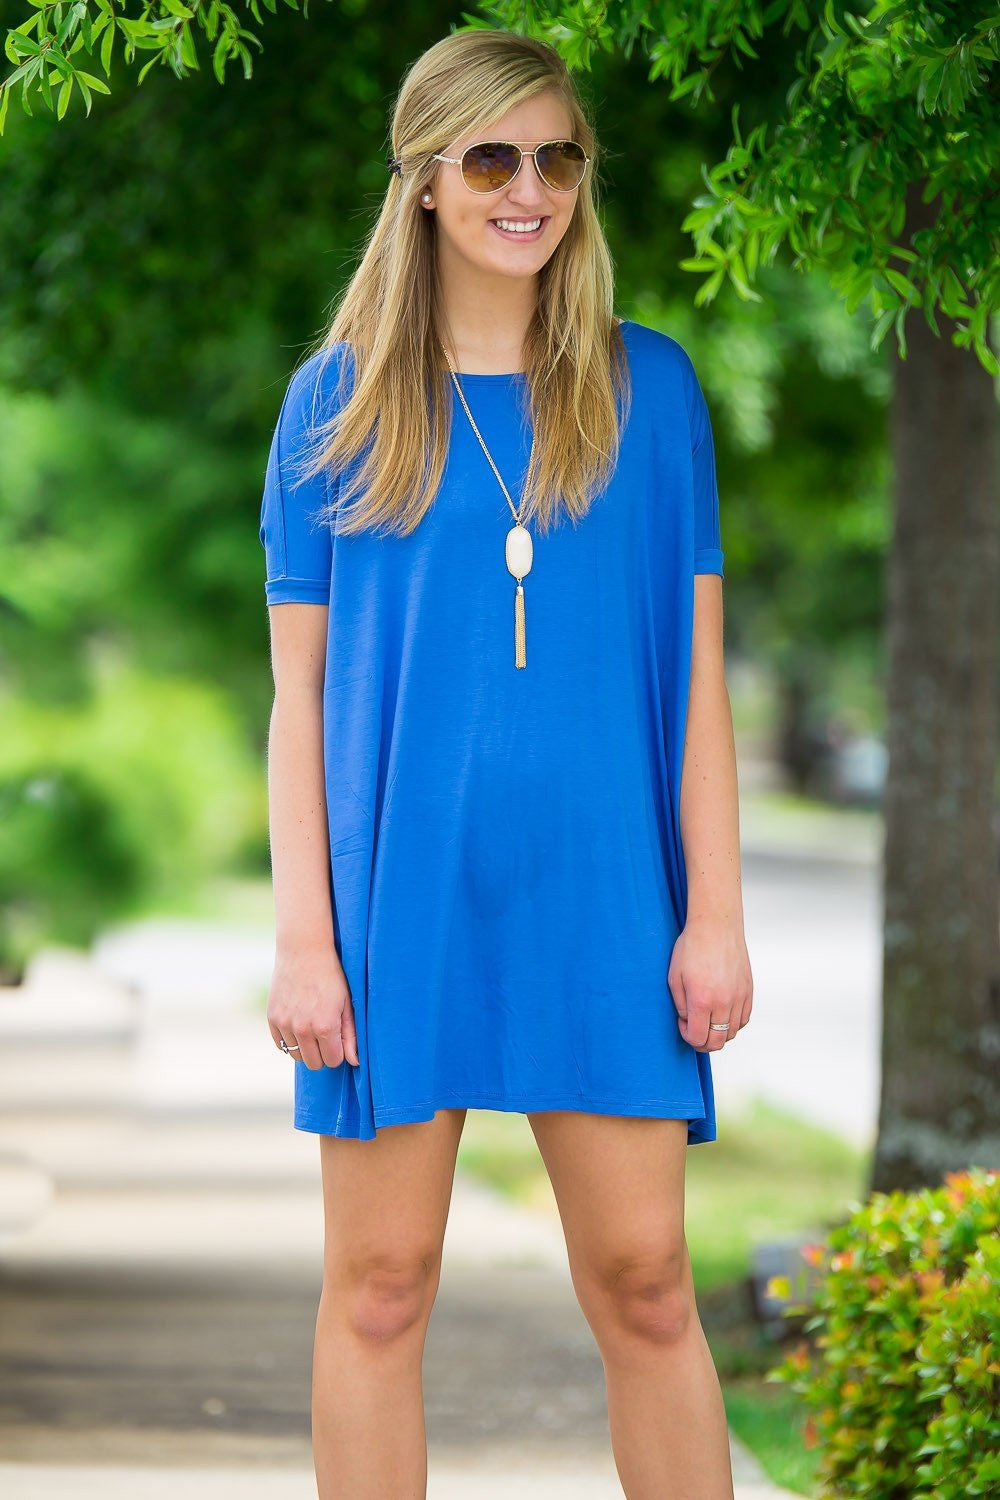 Short Sleeve Piko Tunic - Royal - Piko Clothing - 1